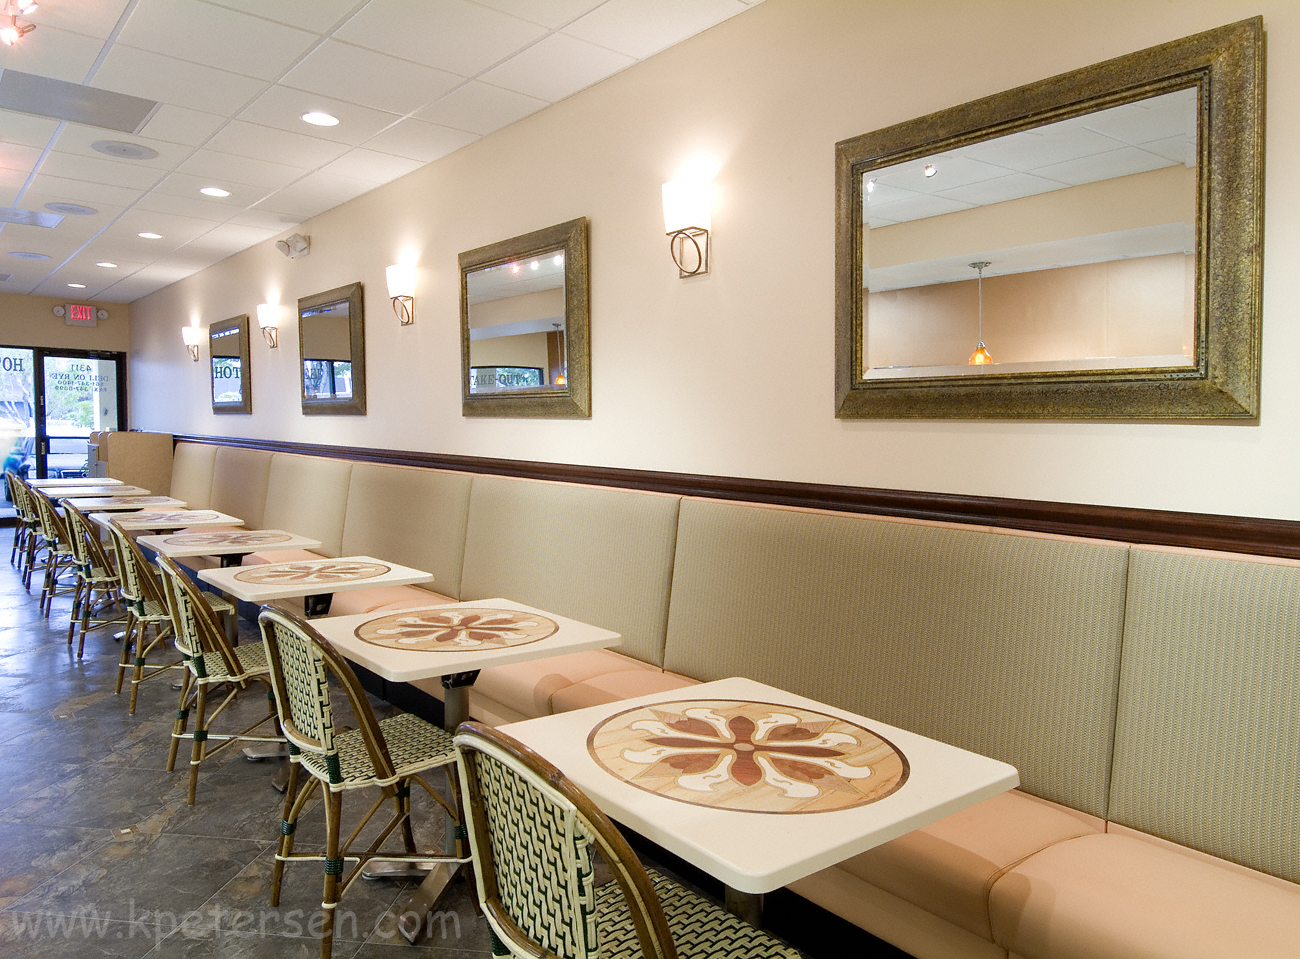 Restaurantinteriors Com 187 Blog Archive 187 Upholstered